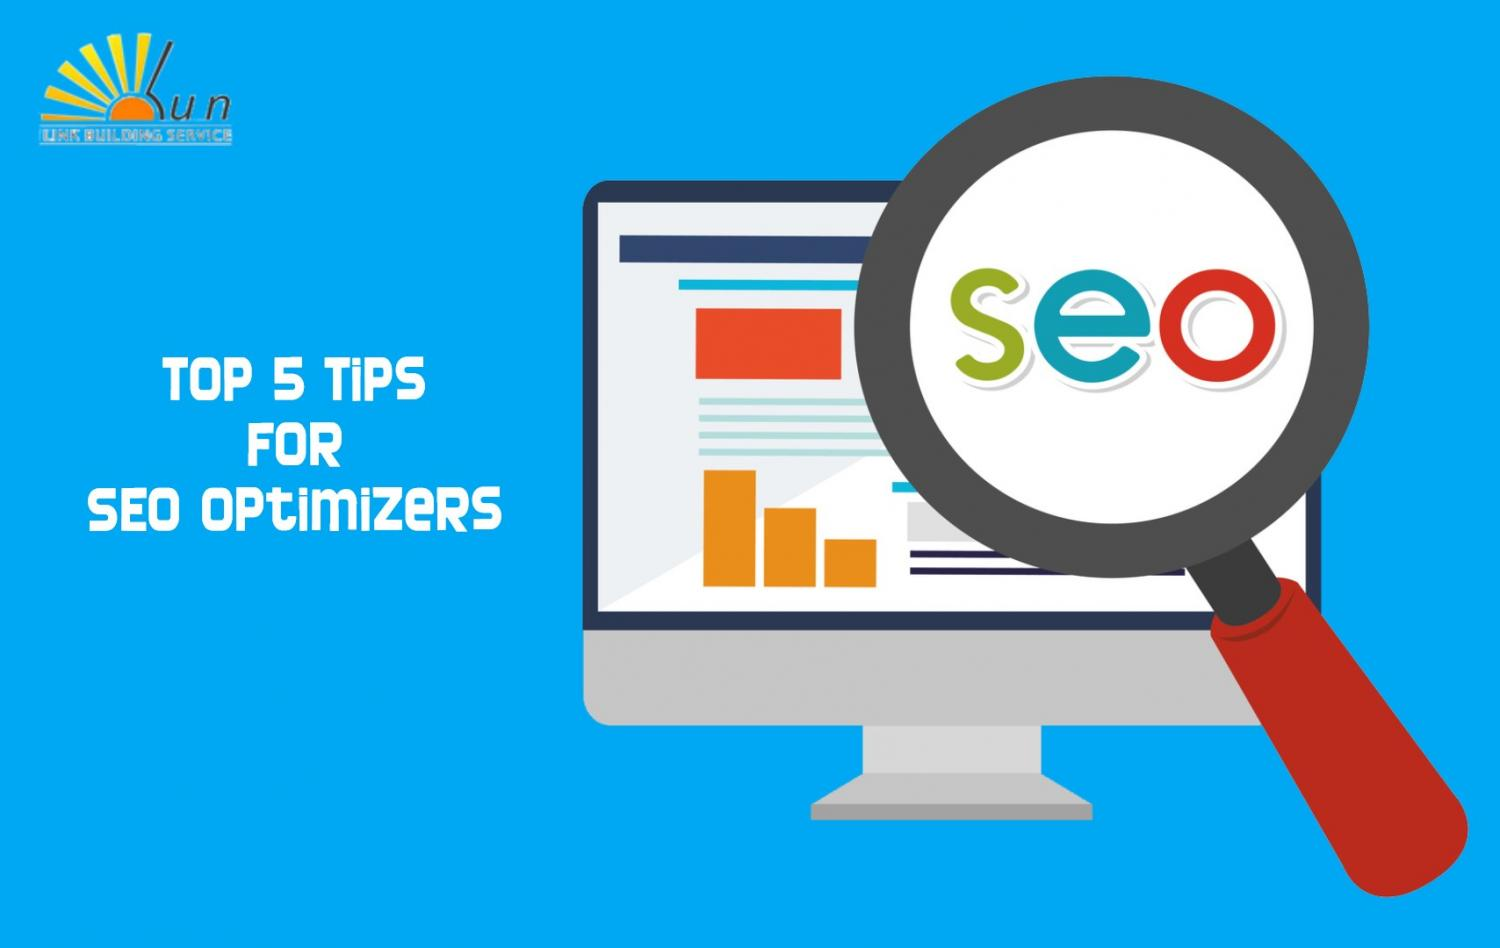 Top Five Tips for Novice SEO Optimizers